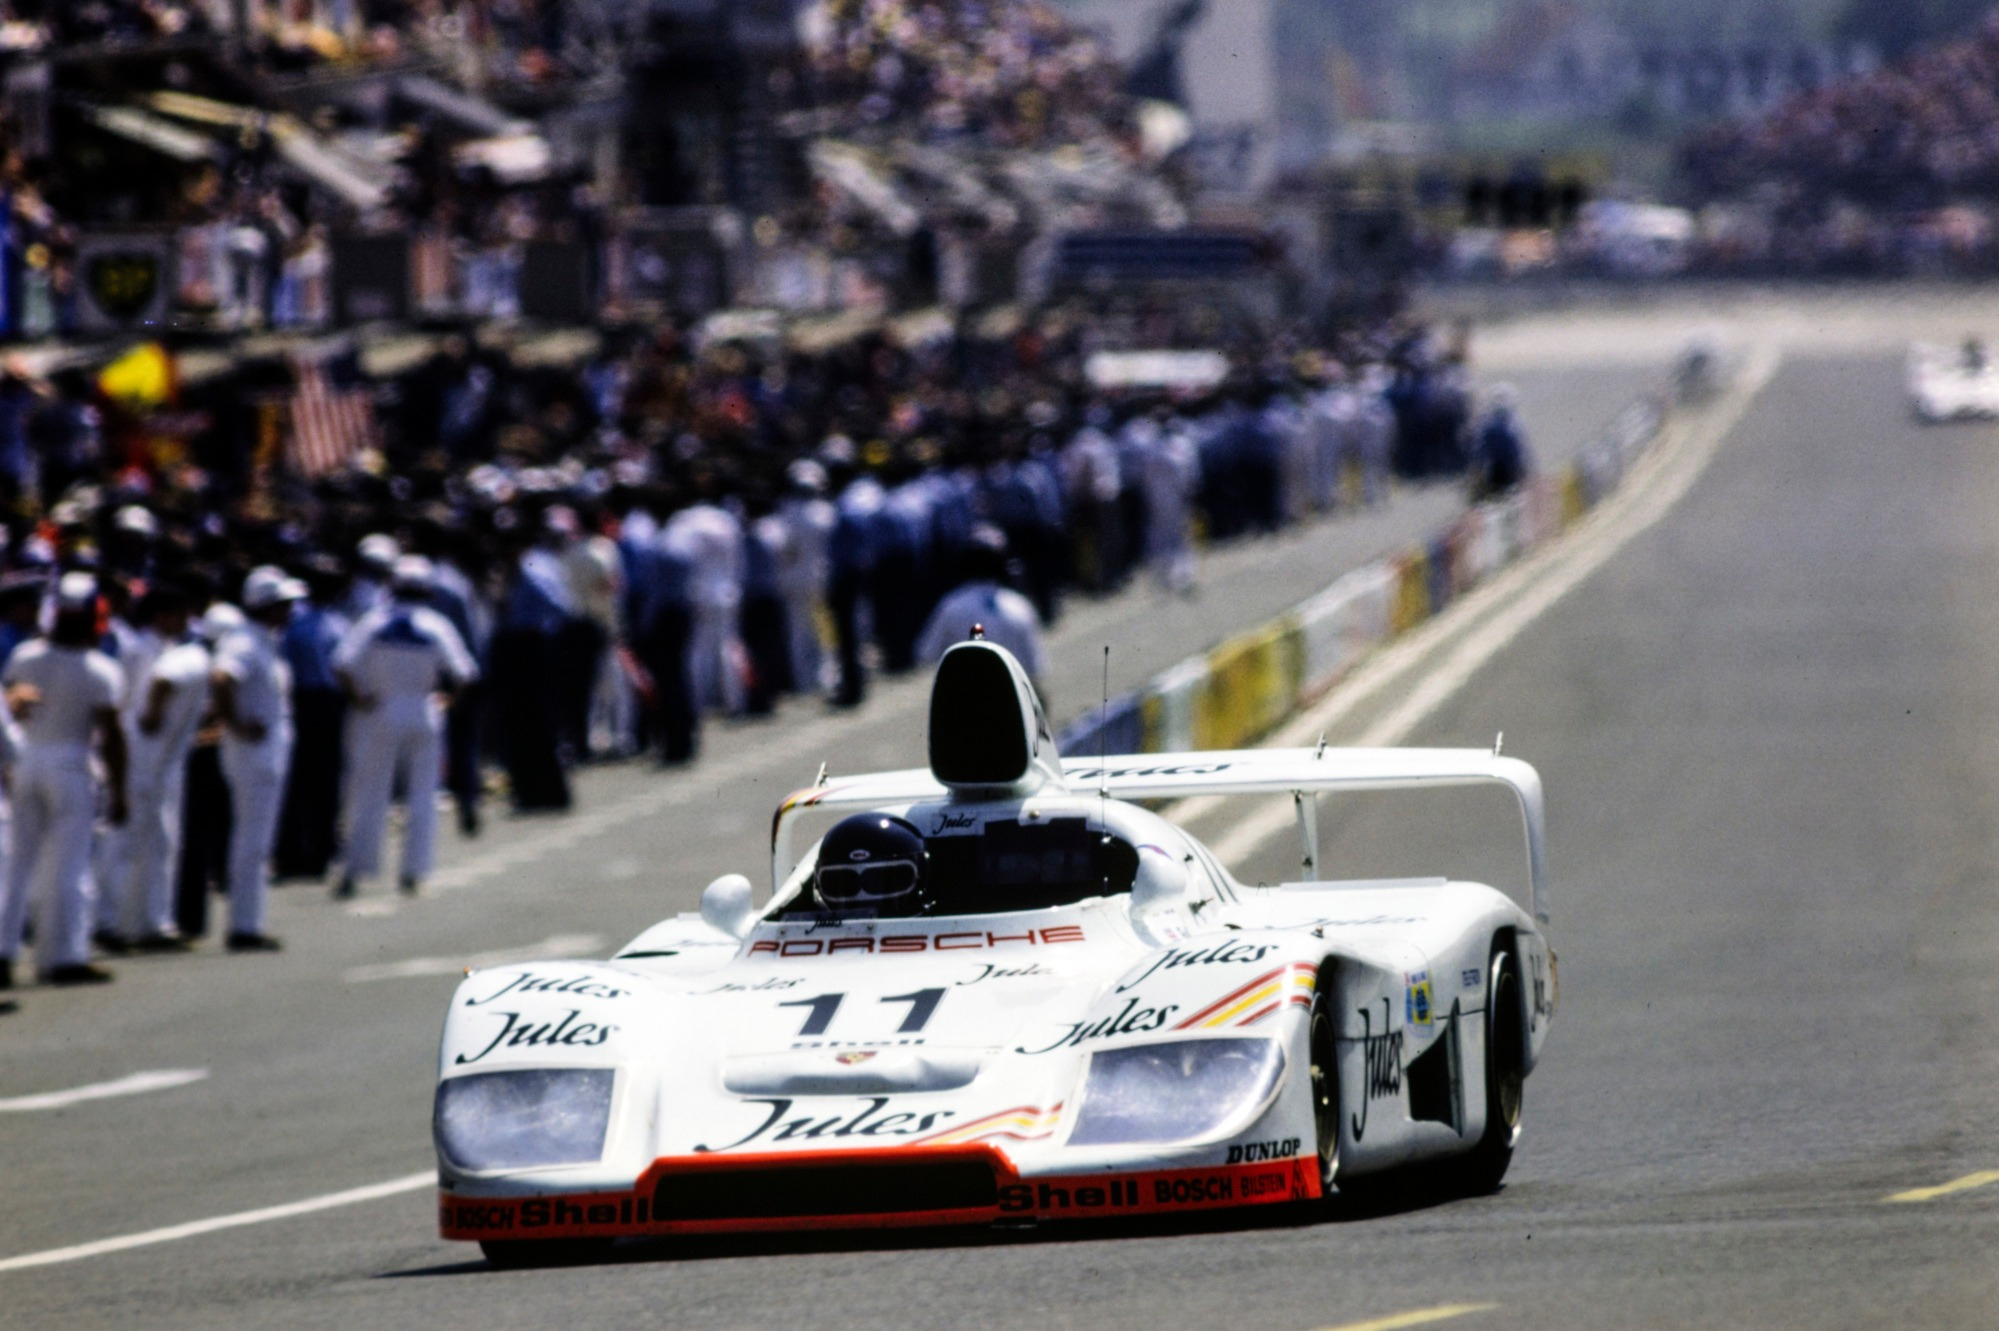 936 with engines originally intended to race in Porsche's mothballed IndyCar programme was rolled out of the museum for Bell and Ickx in 1981